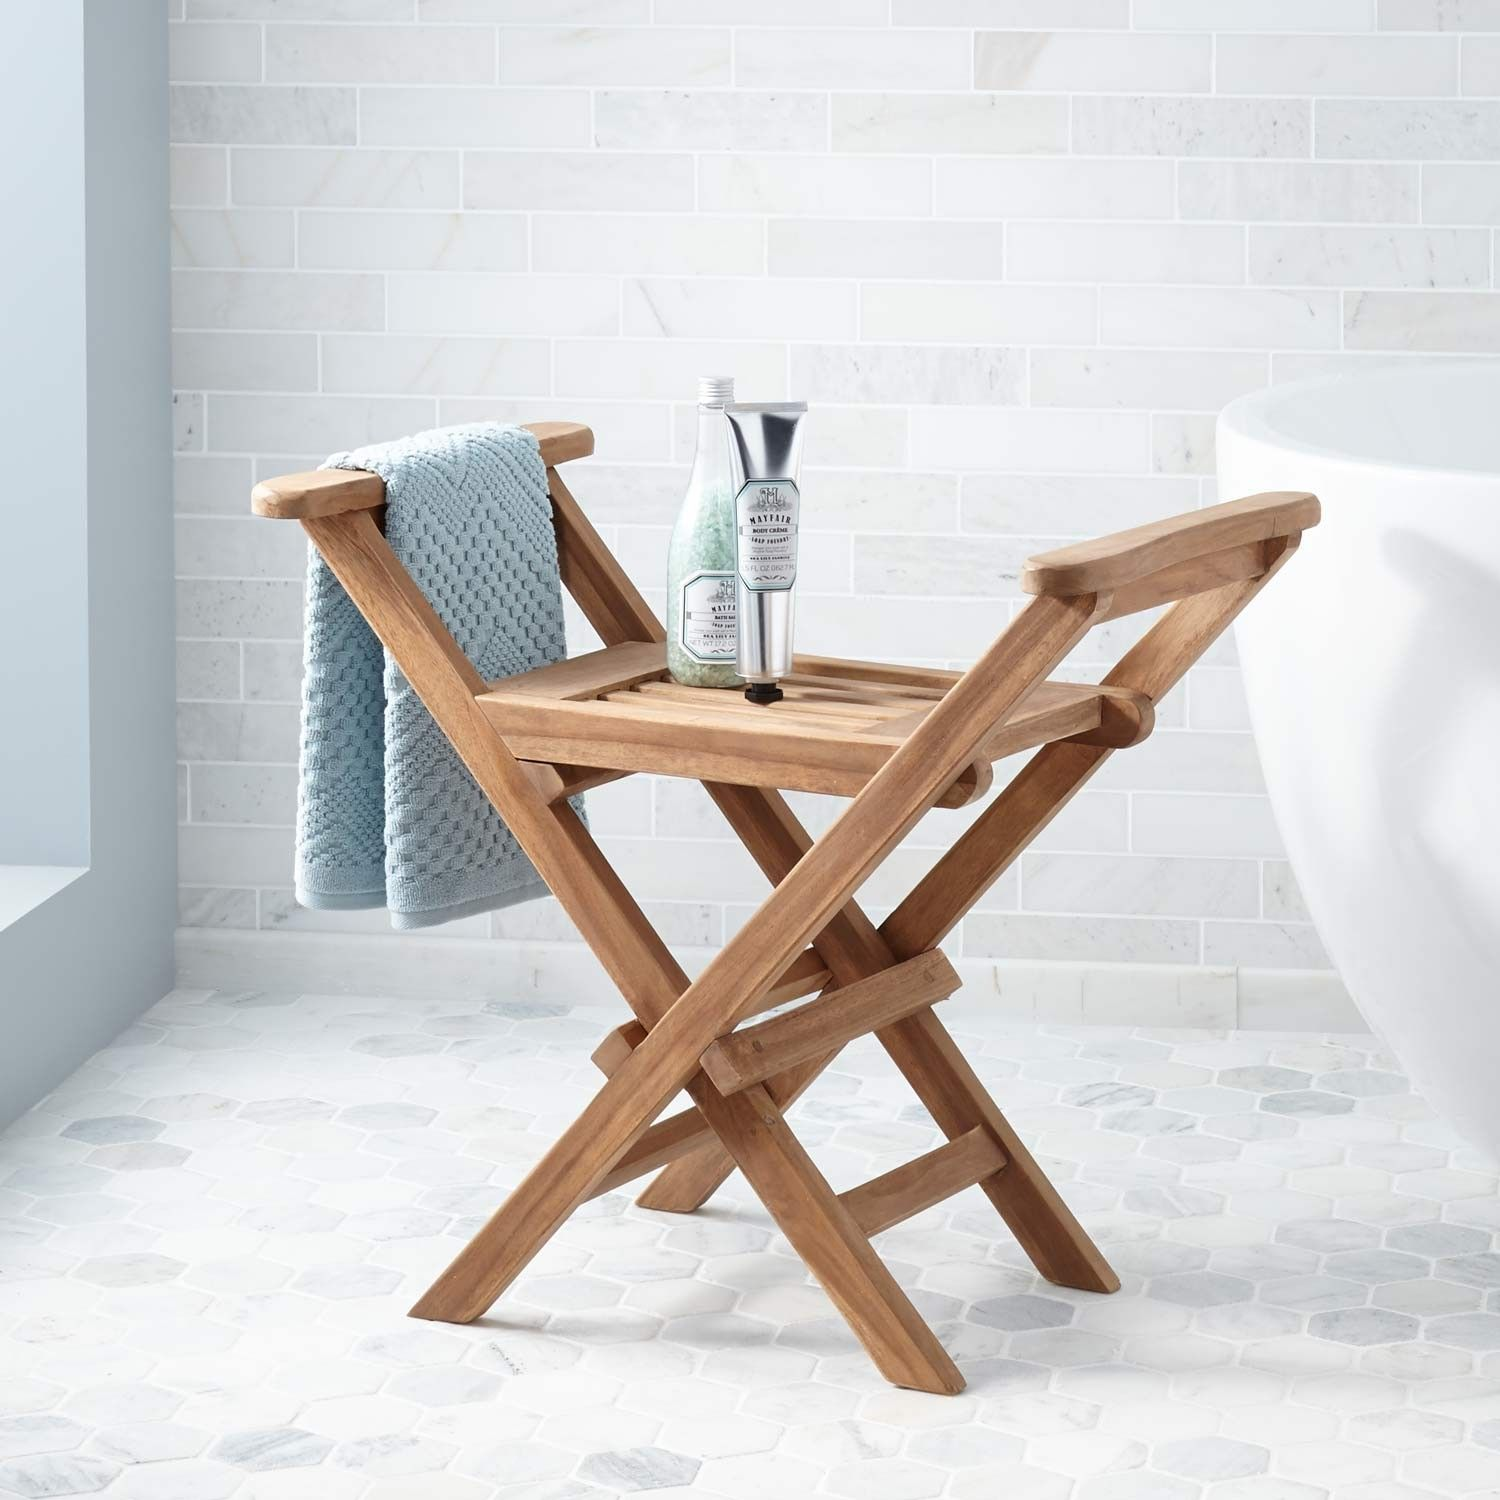 Deluxe Teak Shower Seat Bathroom Teak Shower Seat